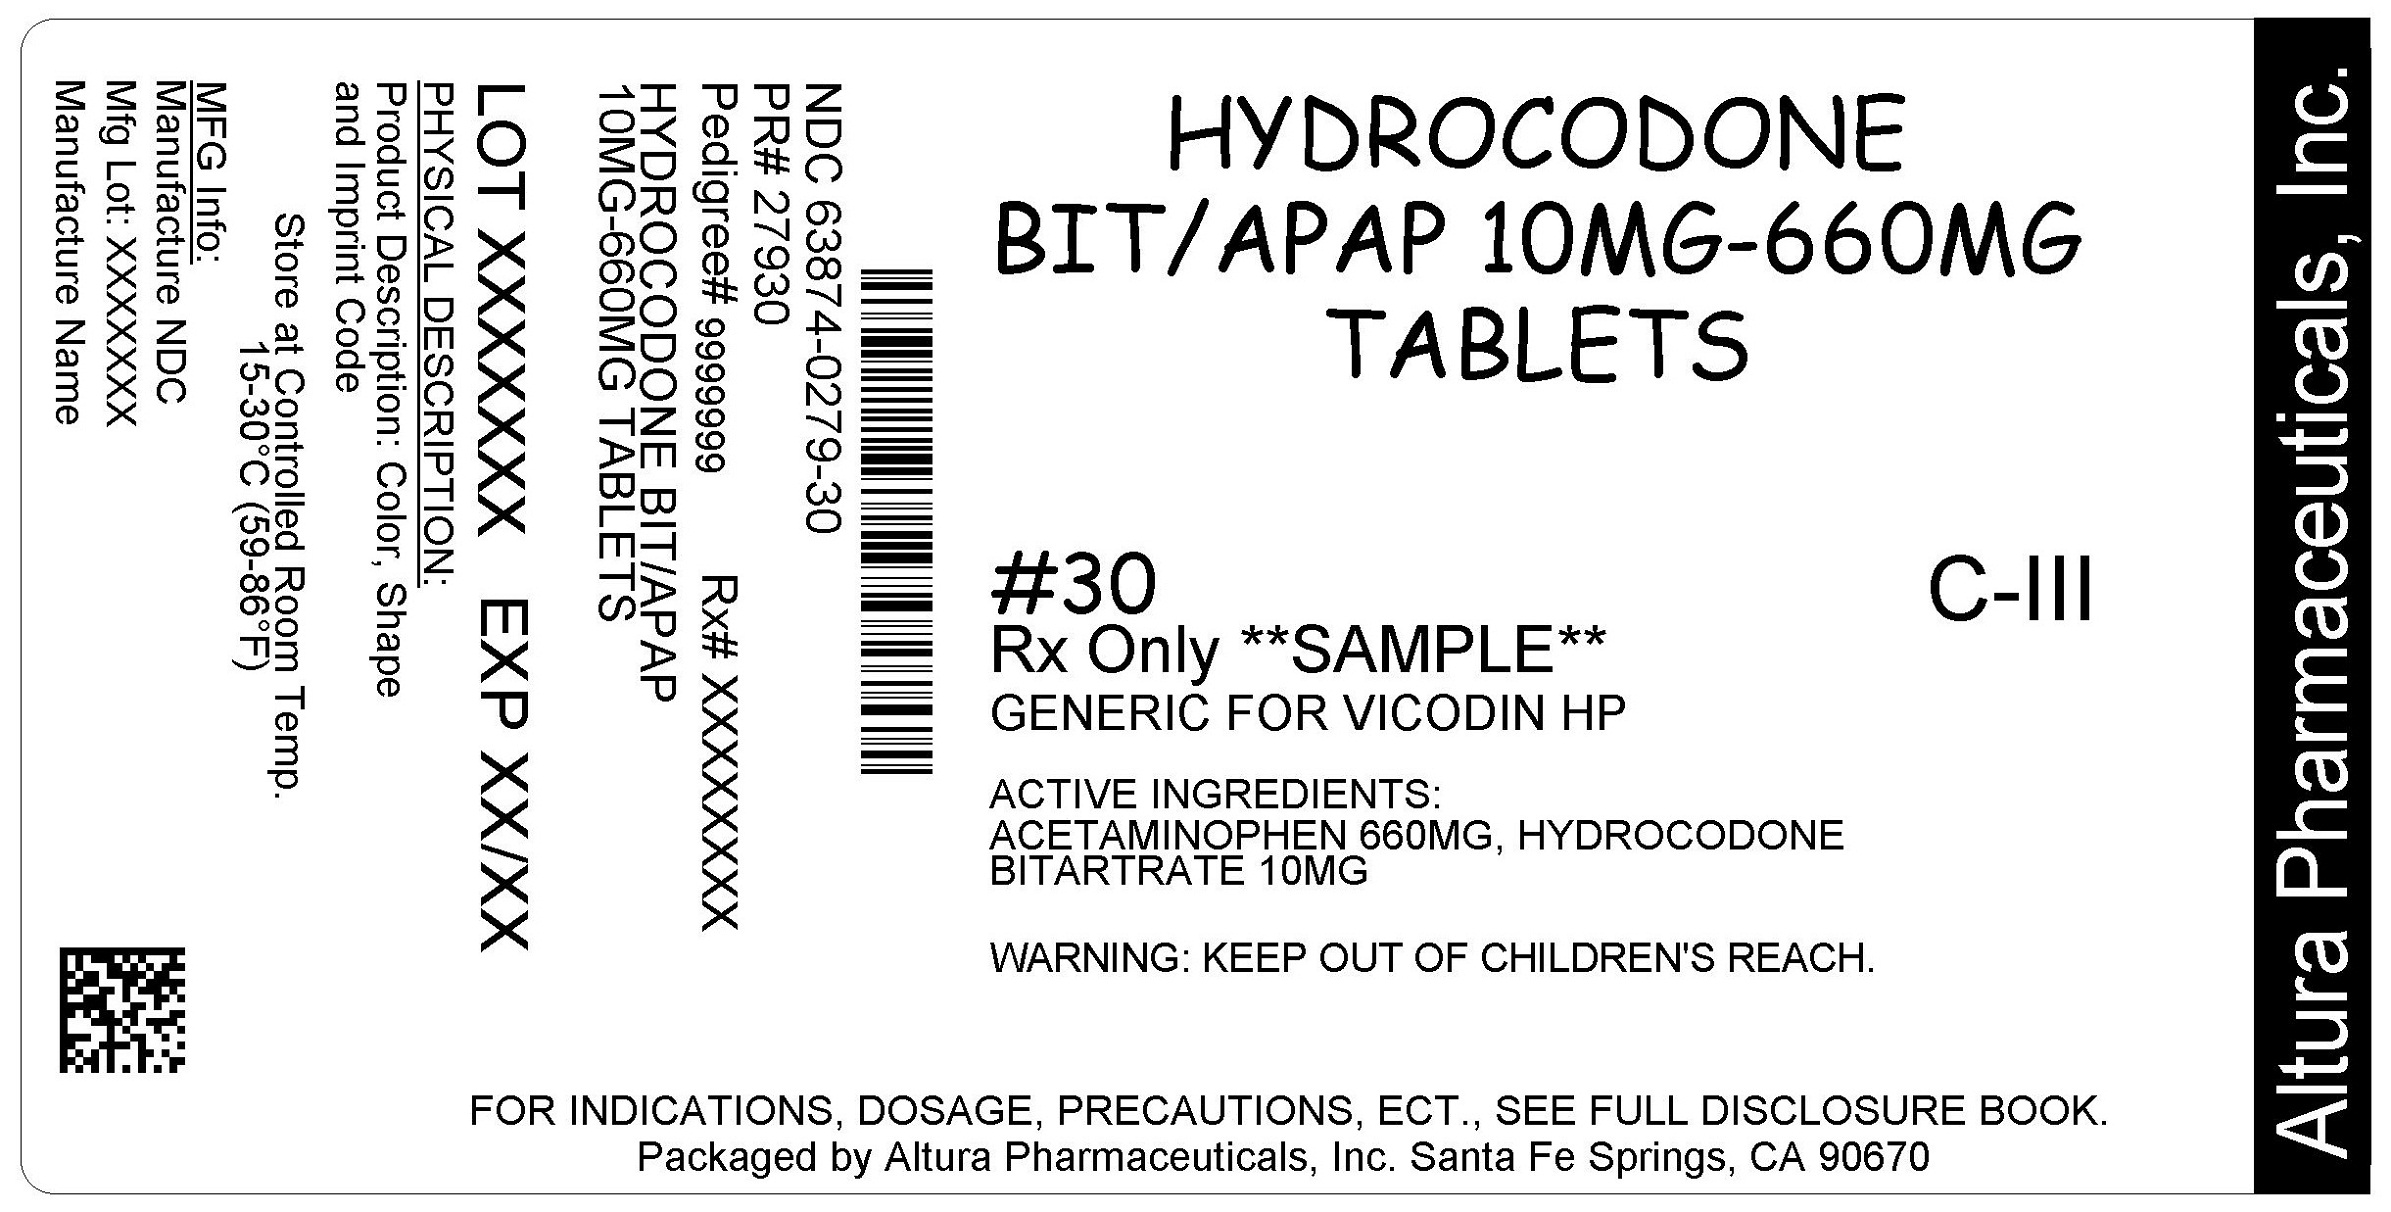 This is an image of the label for 10 mg/660 mg Hydrocodone Bitartrate and Acetaminophen Tablets.